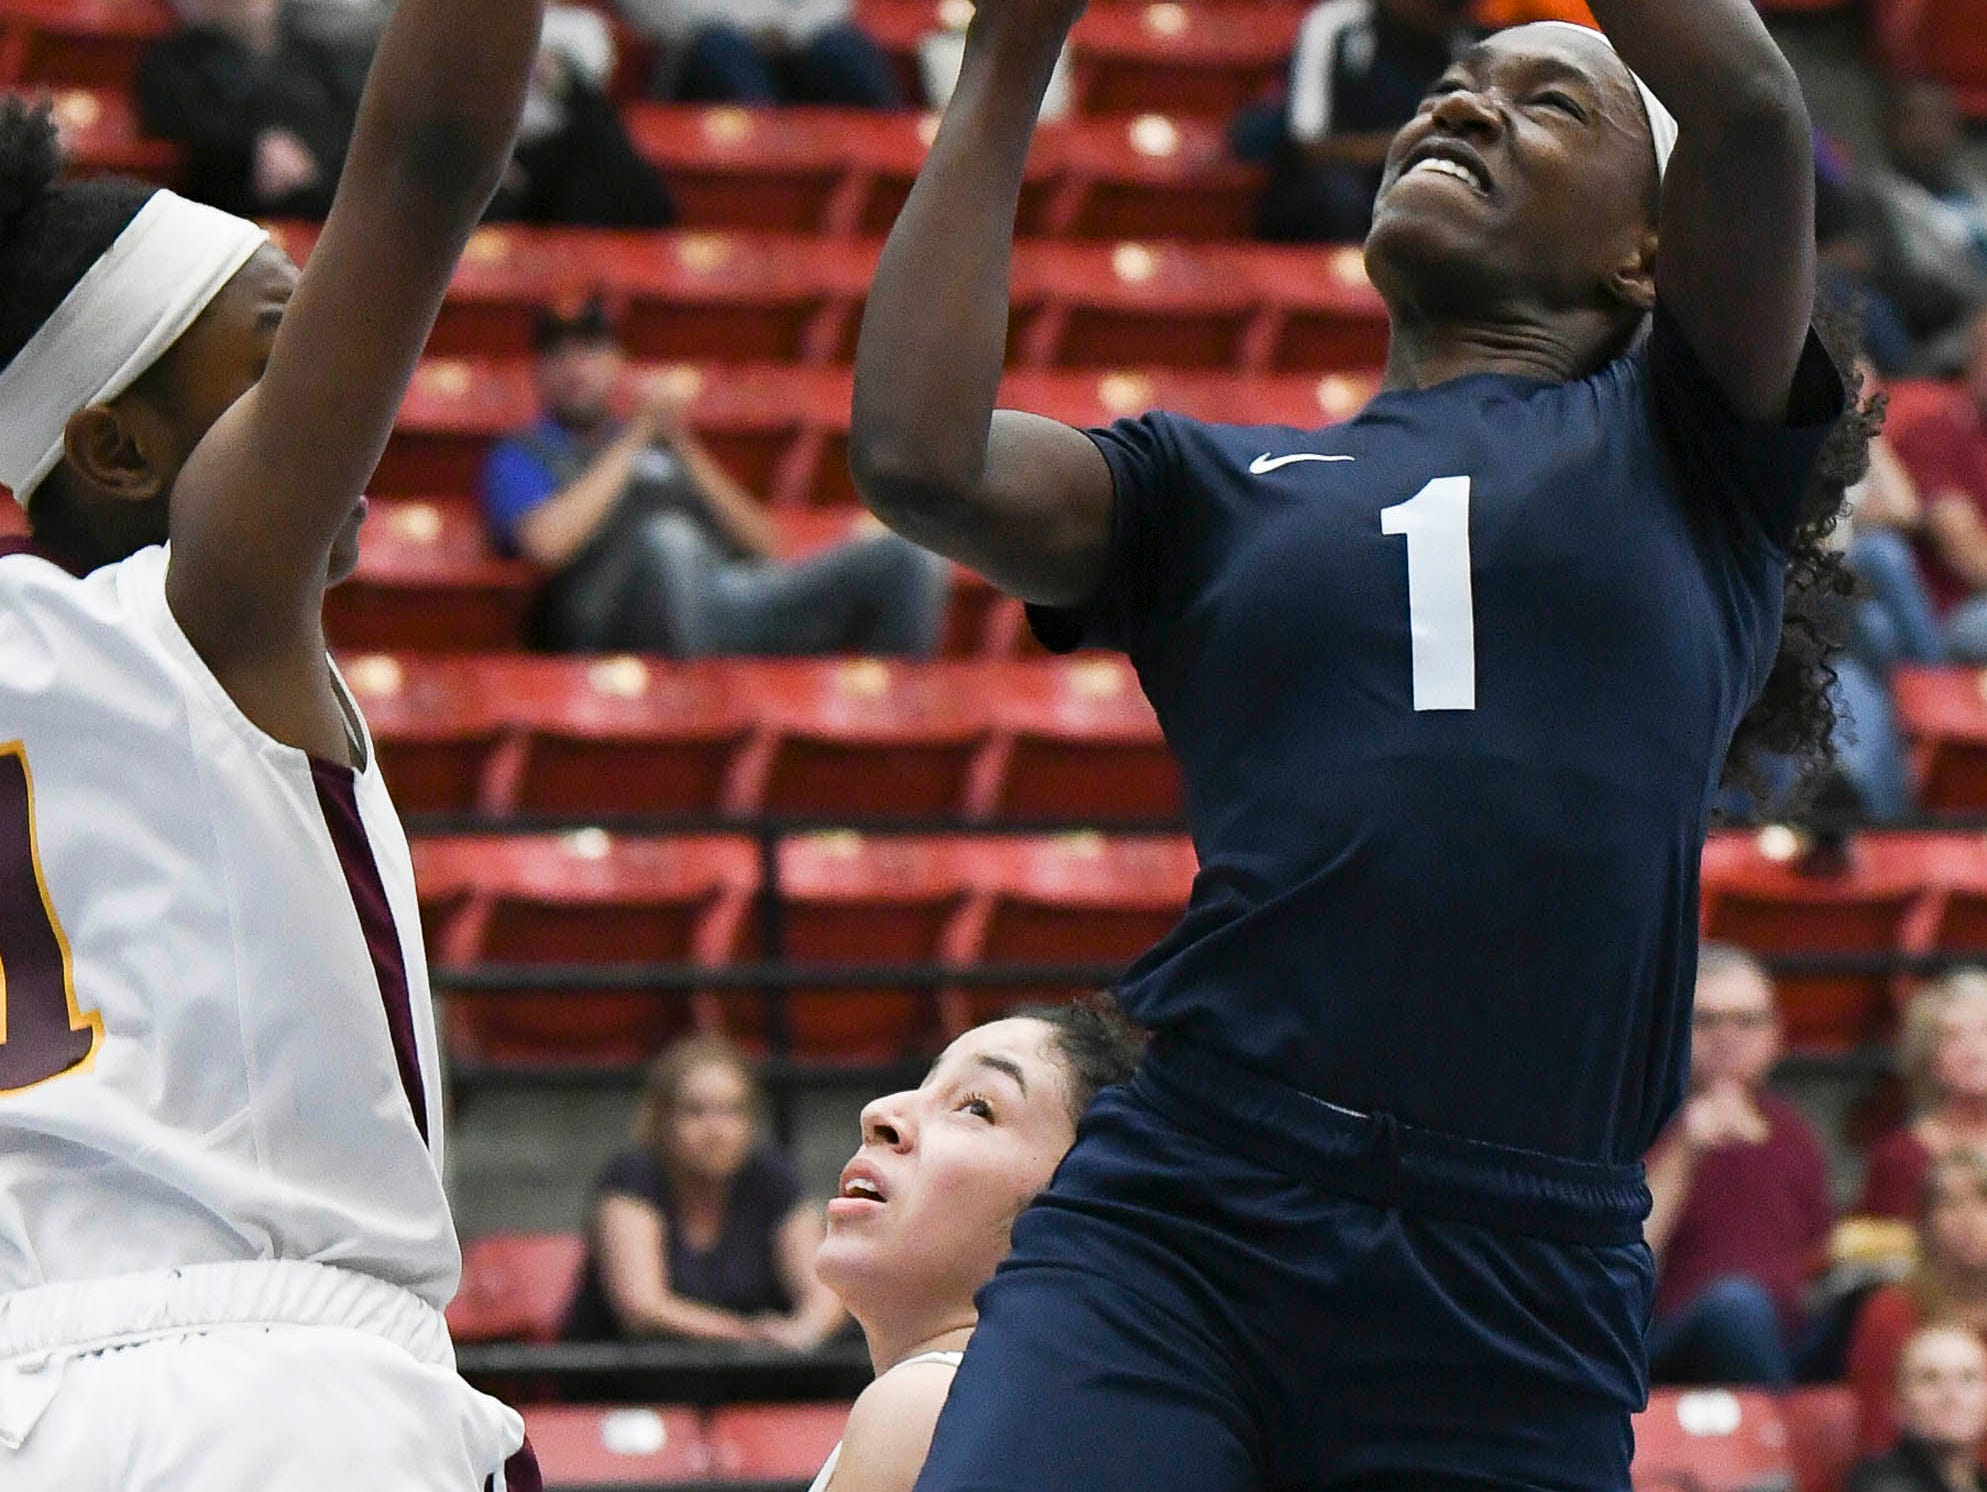 Jayla Johnson of Florida Prep shoots over the guard of Bayshore Christian's Tinnea Johnson during Tuesday's Class 2A state championship game.